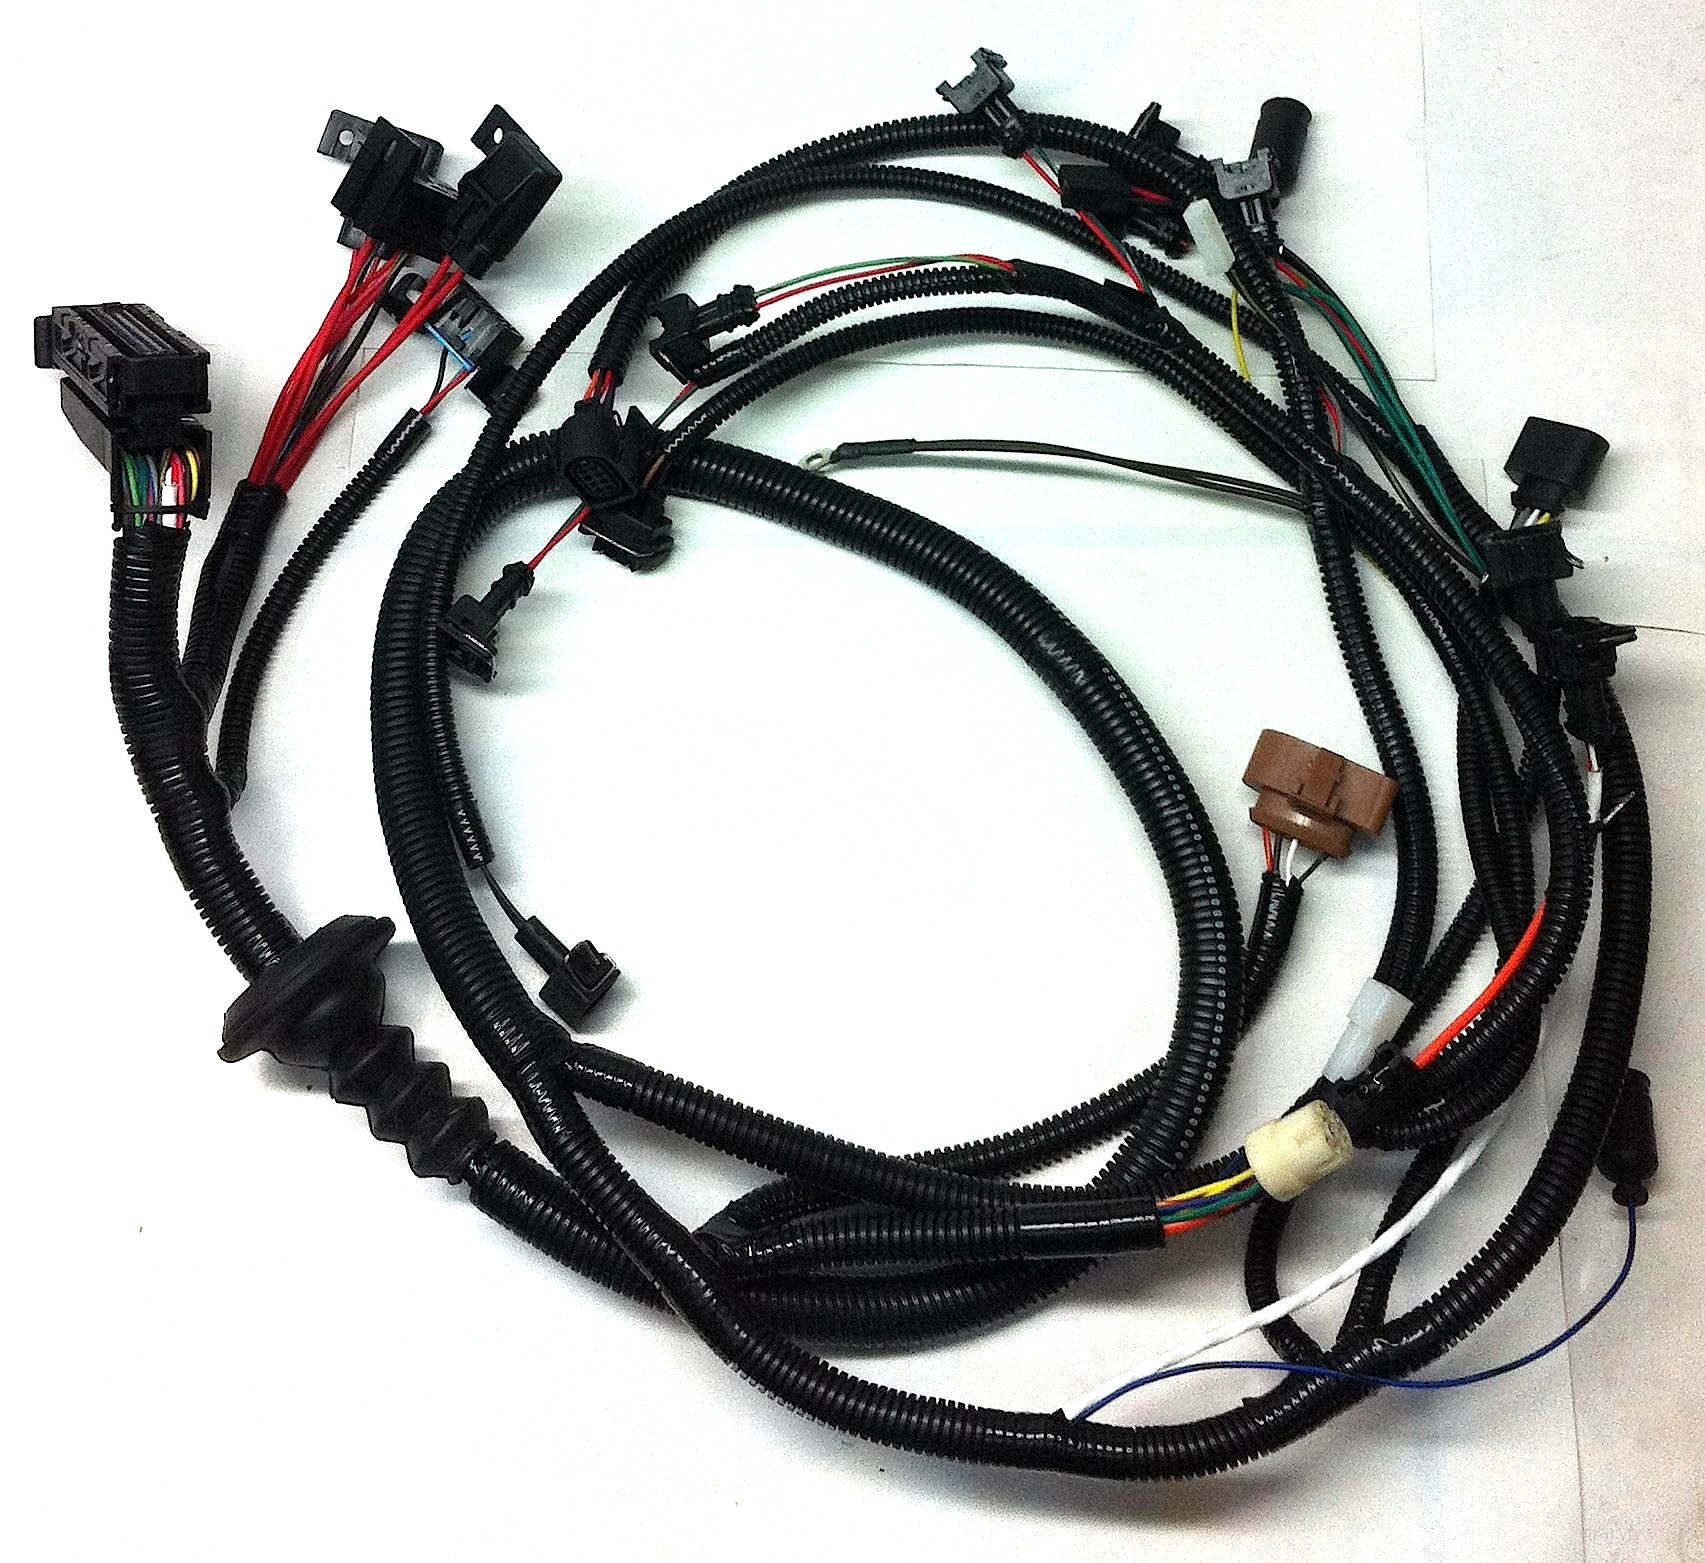 wiring help d16y5 into dx hatch honda tech honda forum discussion New Wiring Harness this is what a complete, shrouded, and new wiring harness looks like new wiring harness